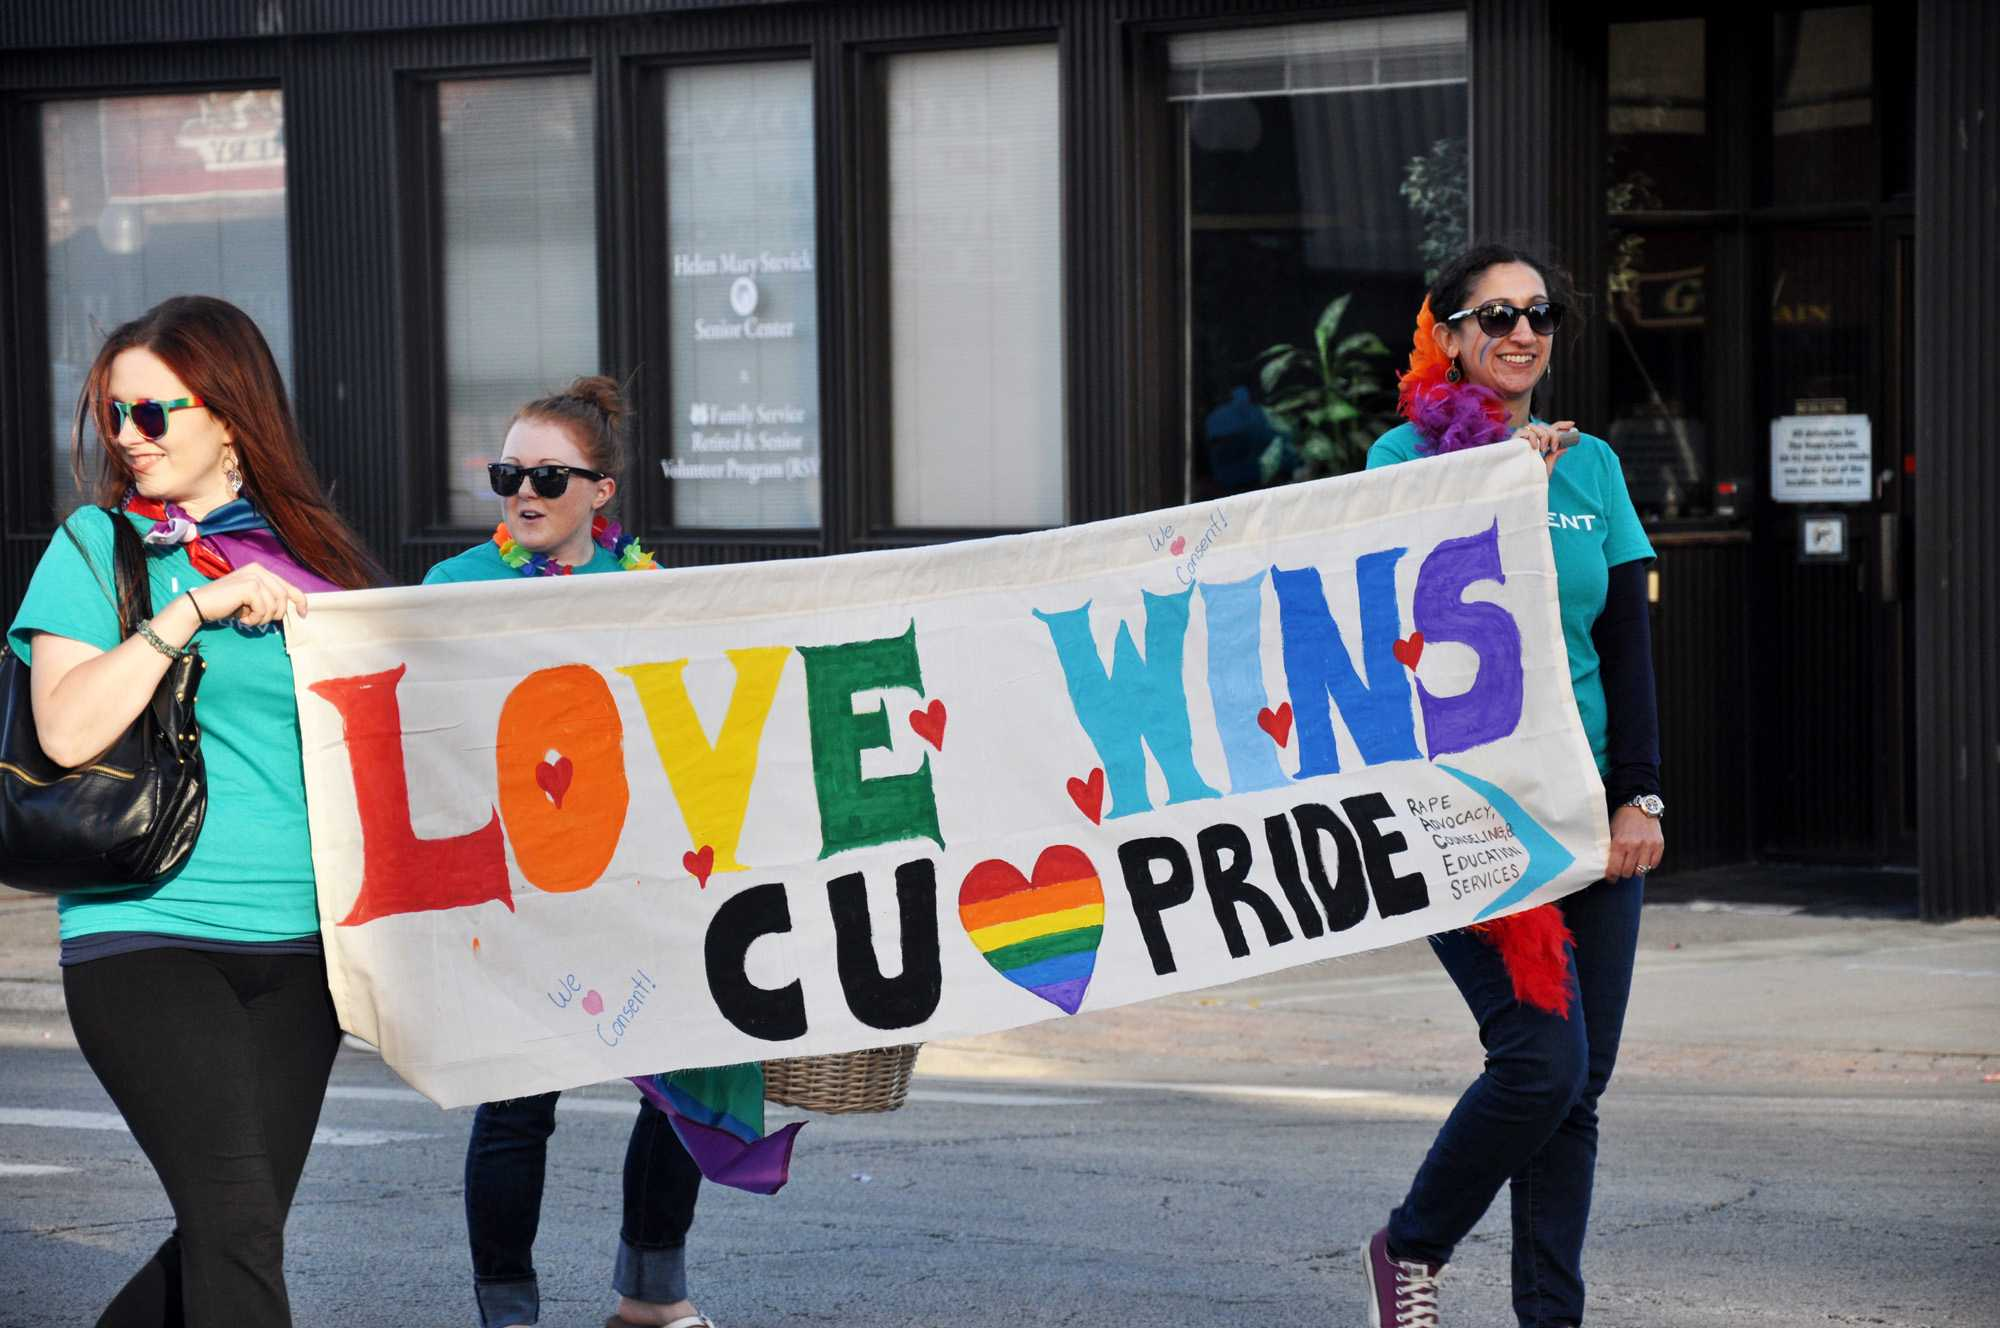 Residents walk through Main Street at the Champaign Pride Parade in 2015.